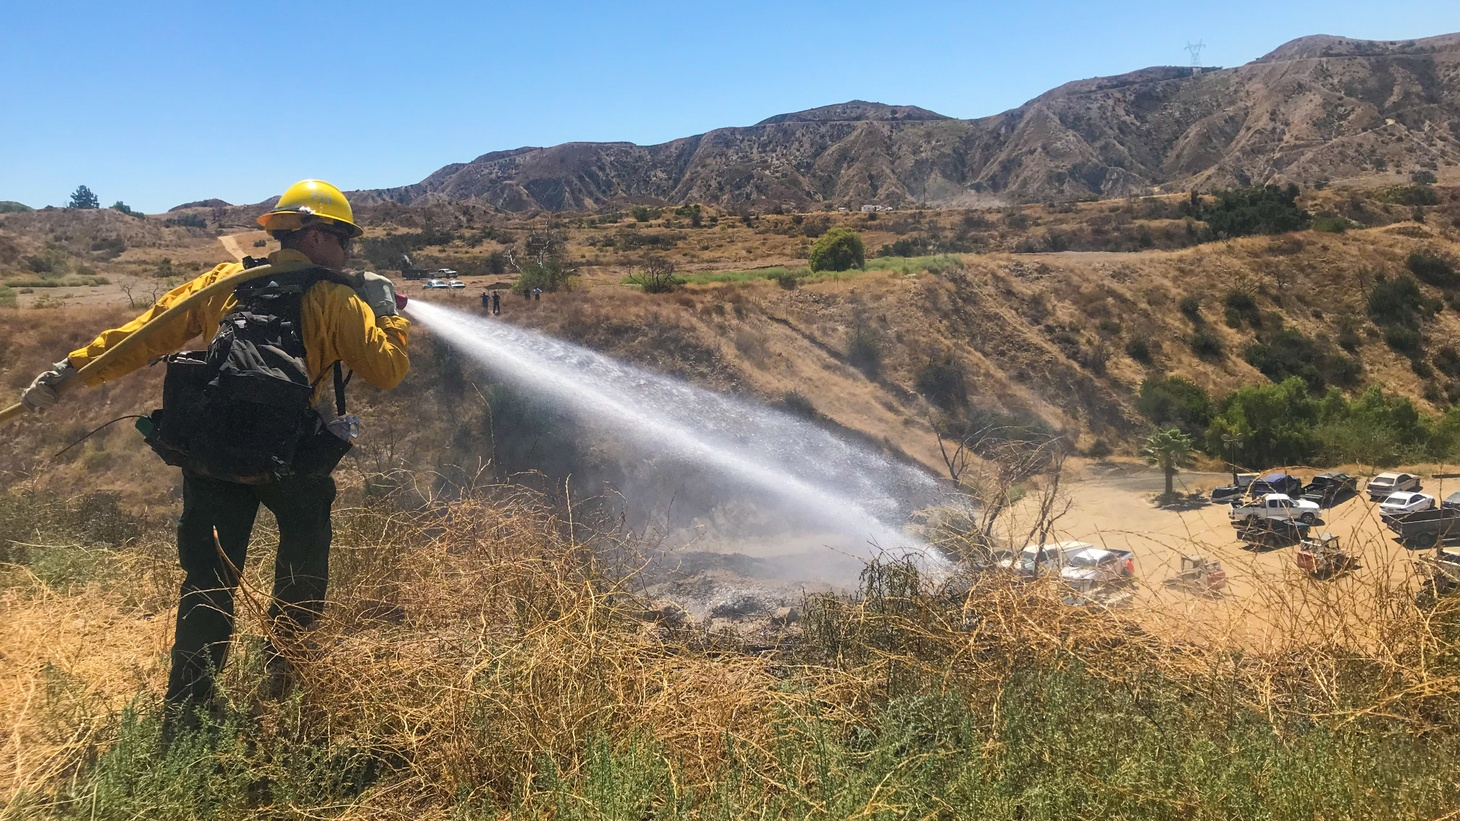 A firefighter with the U.S. Forest Service works to put out a brush fire in the Angeles National Forest